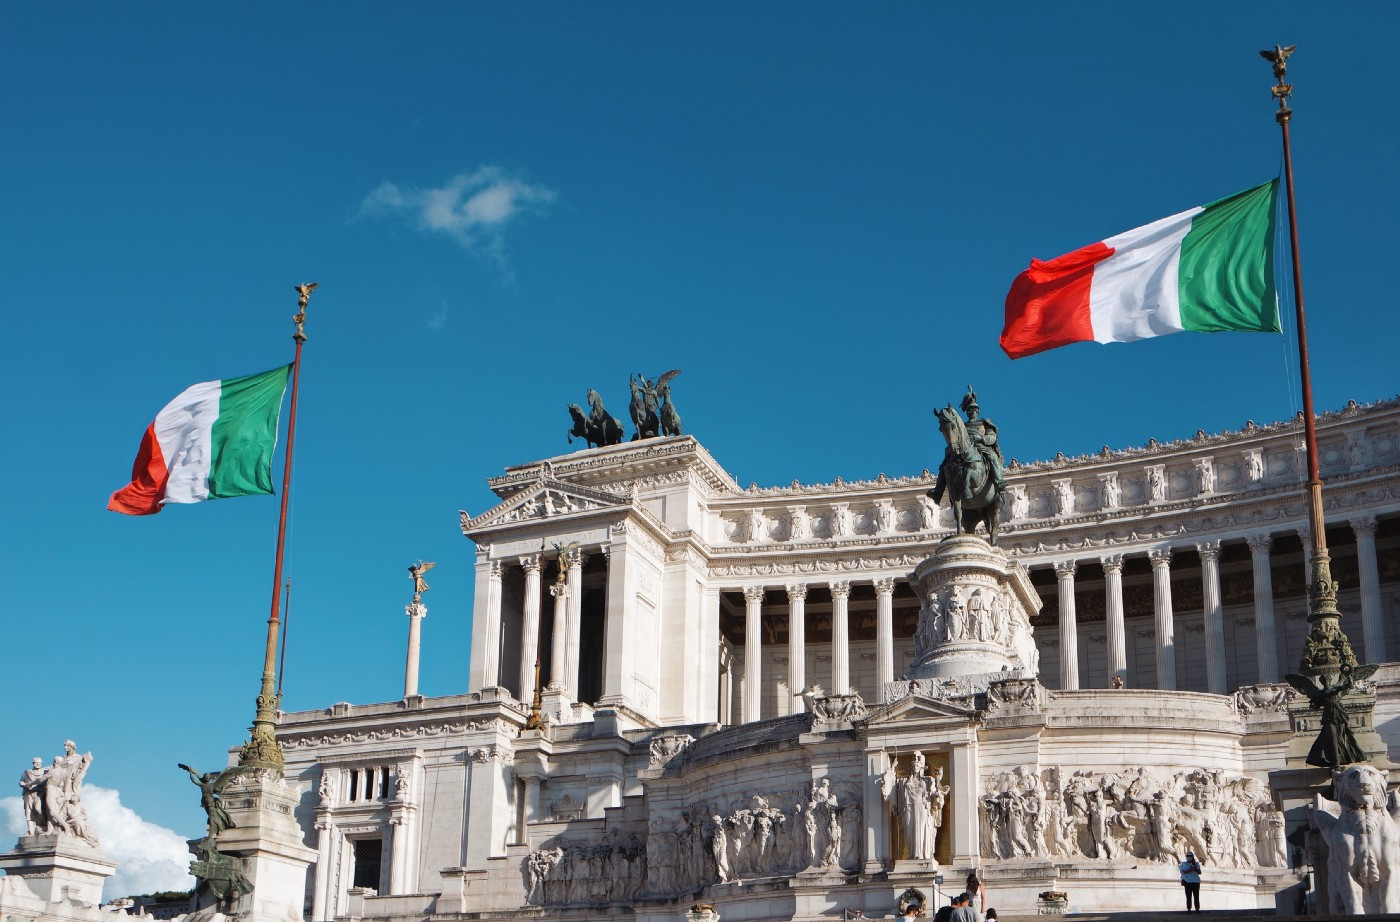 This photo shows the famous Vittorio Emmanuele II Monument in the heart of Rome. There are two Italian flags on each side of the monument and a figure on a horse at the center. There are Roman columns at the front of the building and classical Roman architecture along with embedded bas relief on the building.